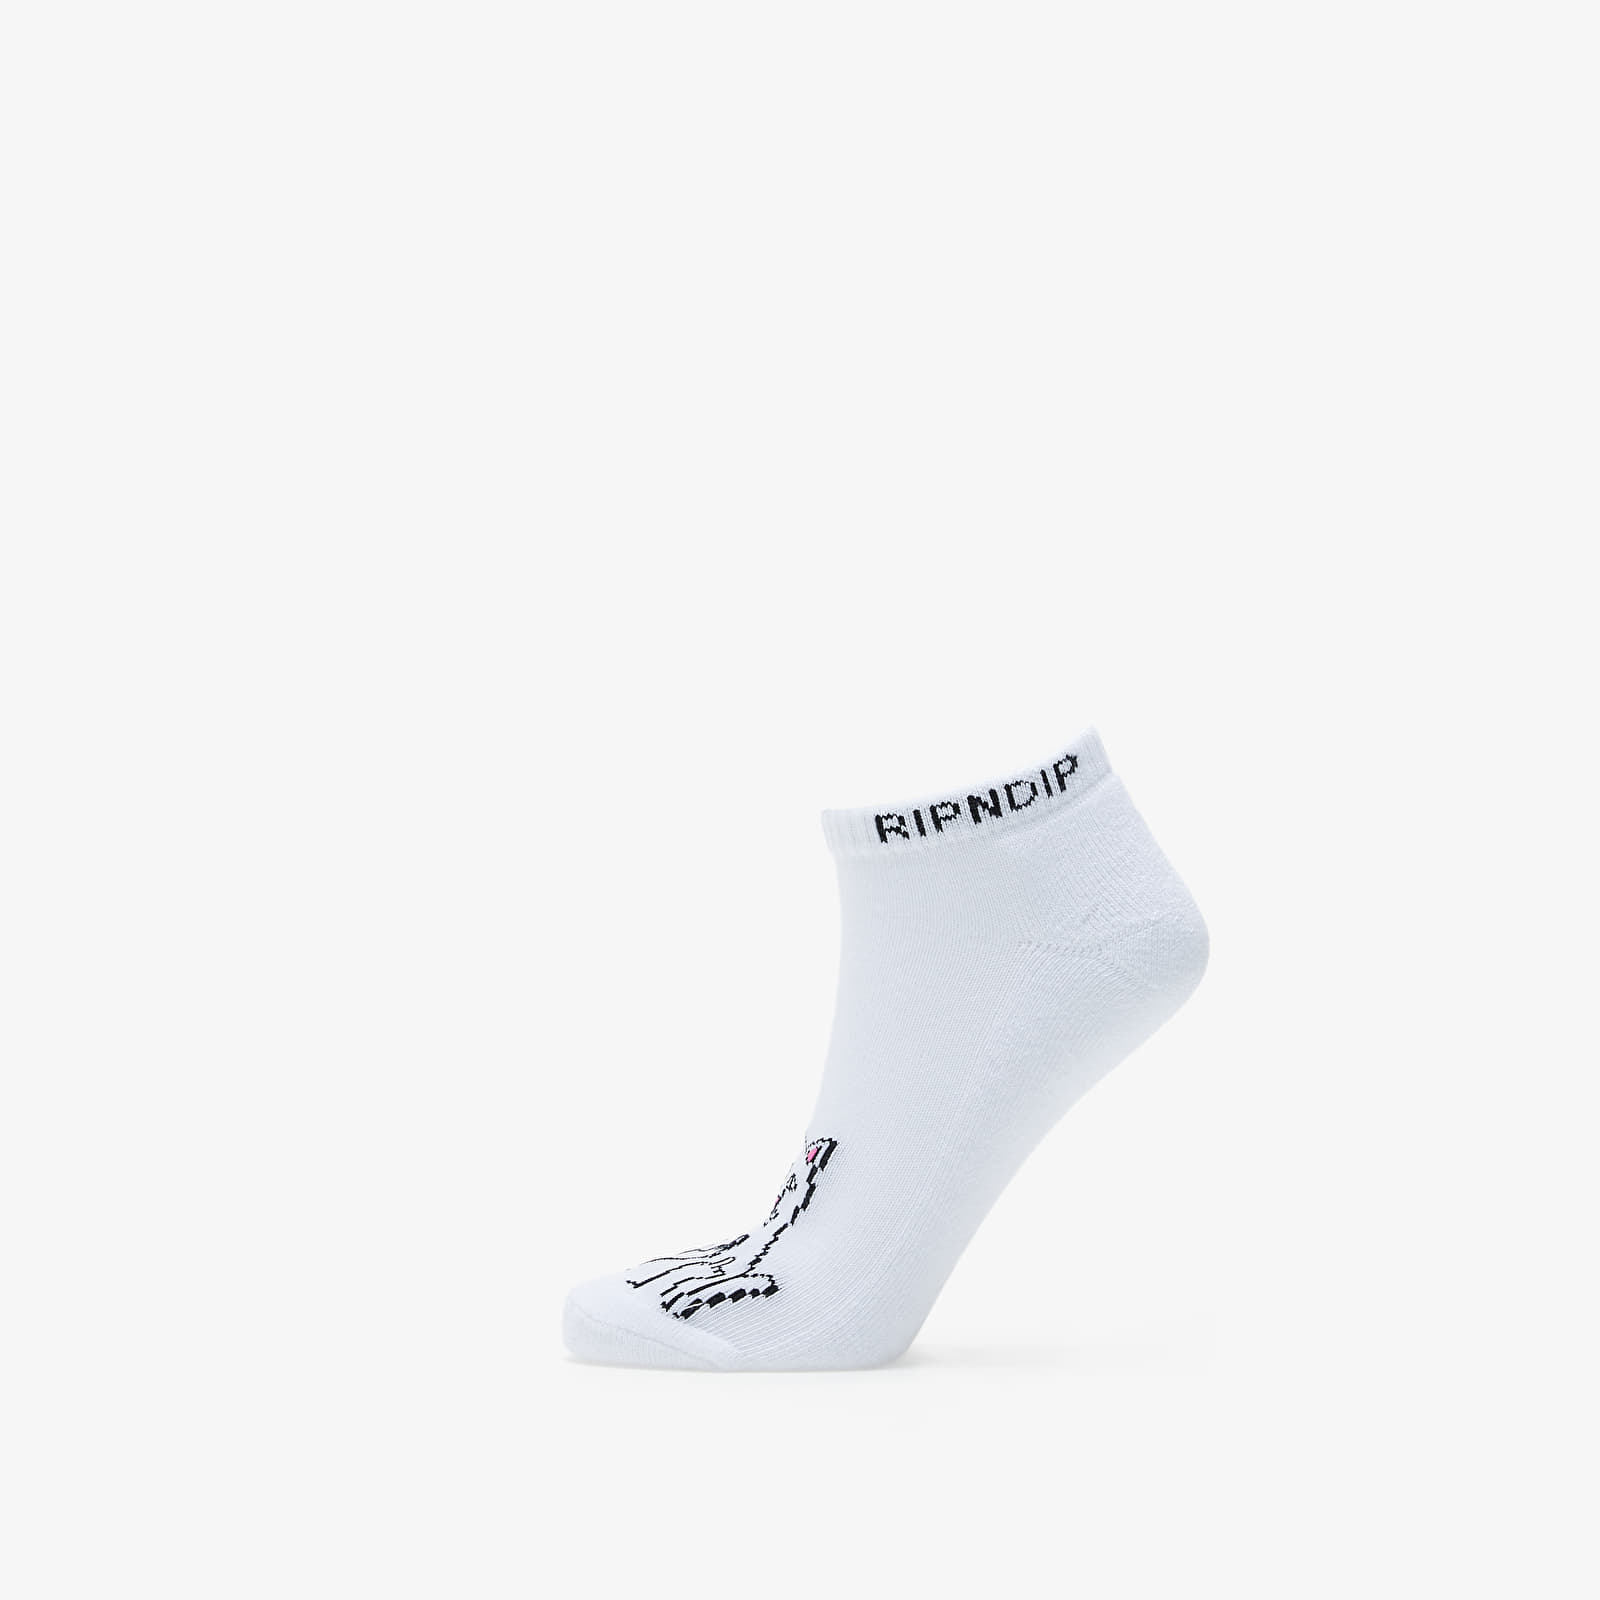 RIPNDIP Lord Nermal Low Socks